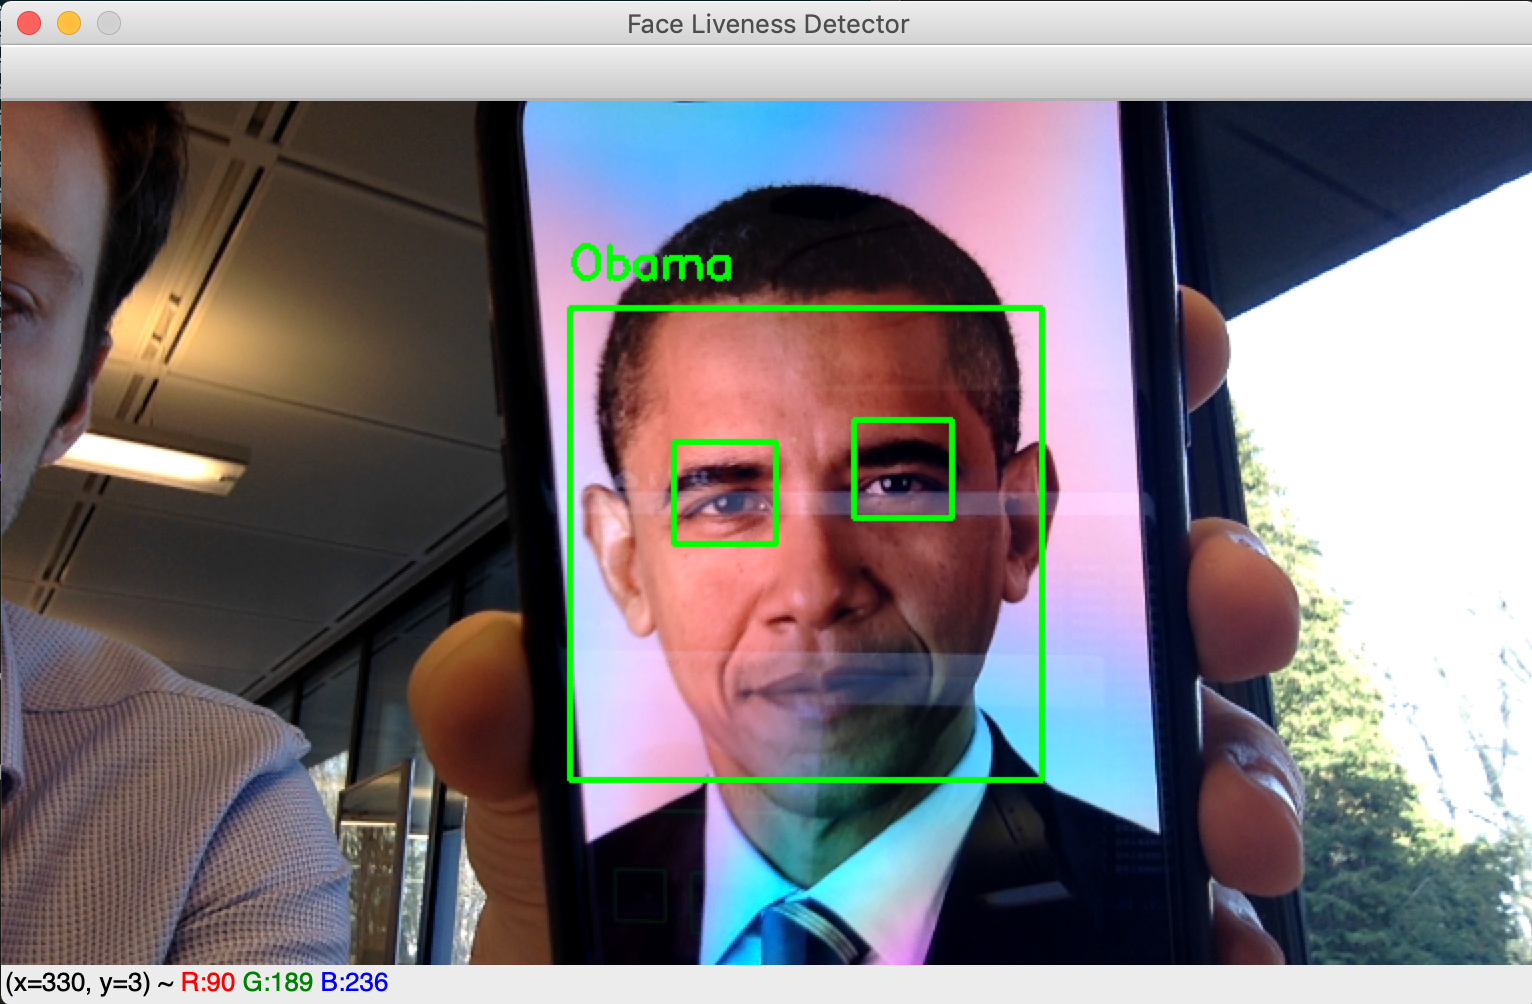 Real-time face liveness detection with Python, Keras and OpenCV